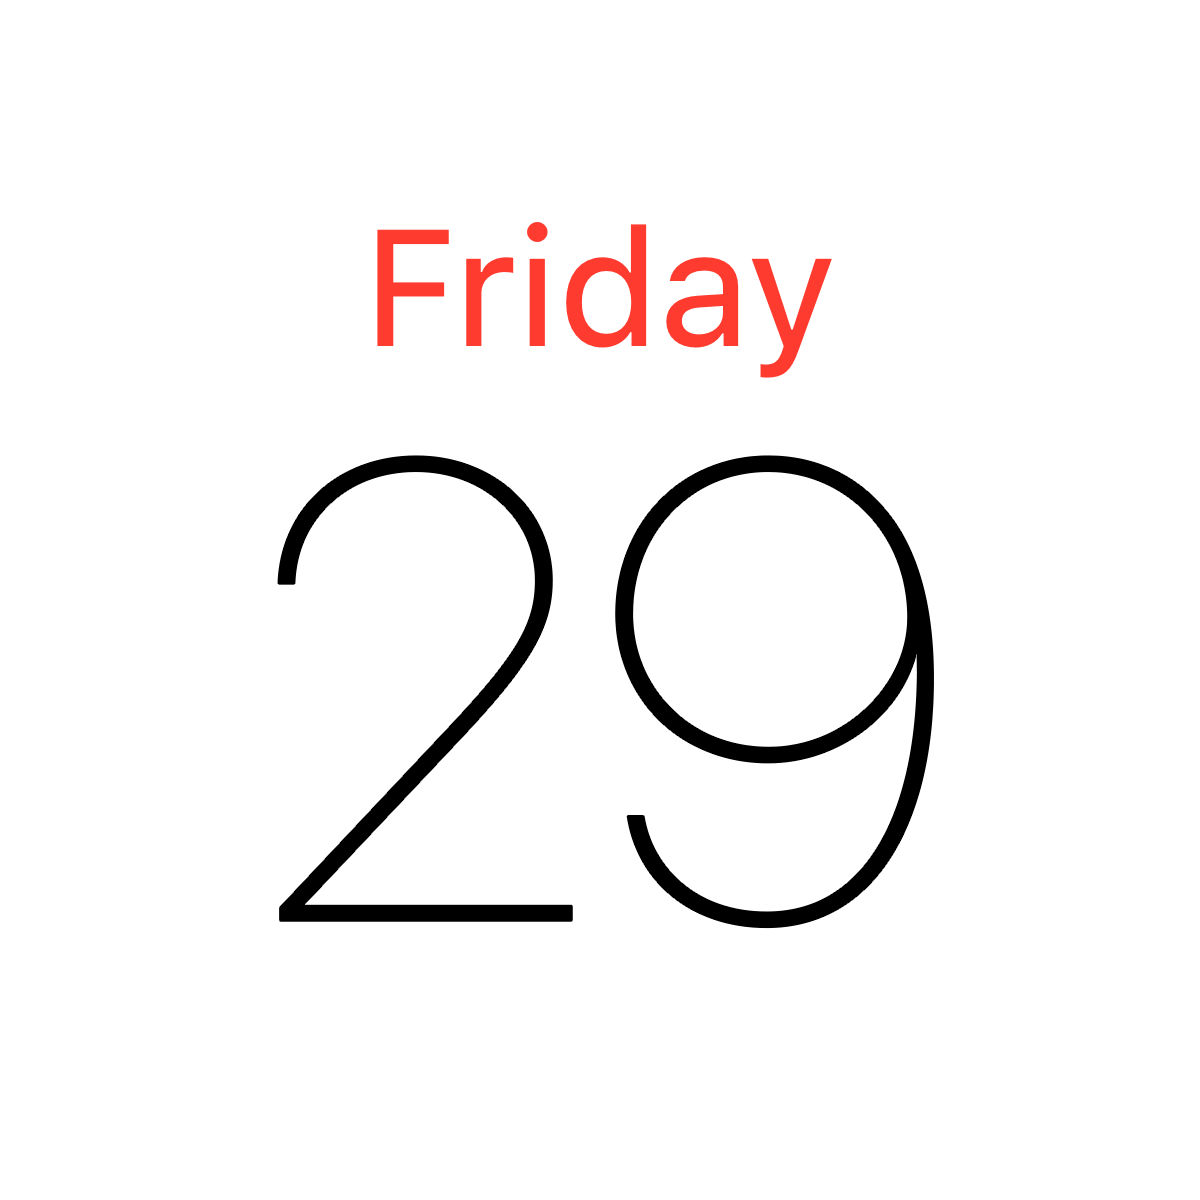 Clipart that looks like apple calendar picture library stock The best calendar app for iPhone - The Verge picture library stock